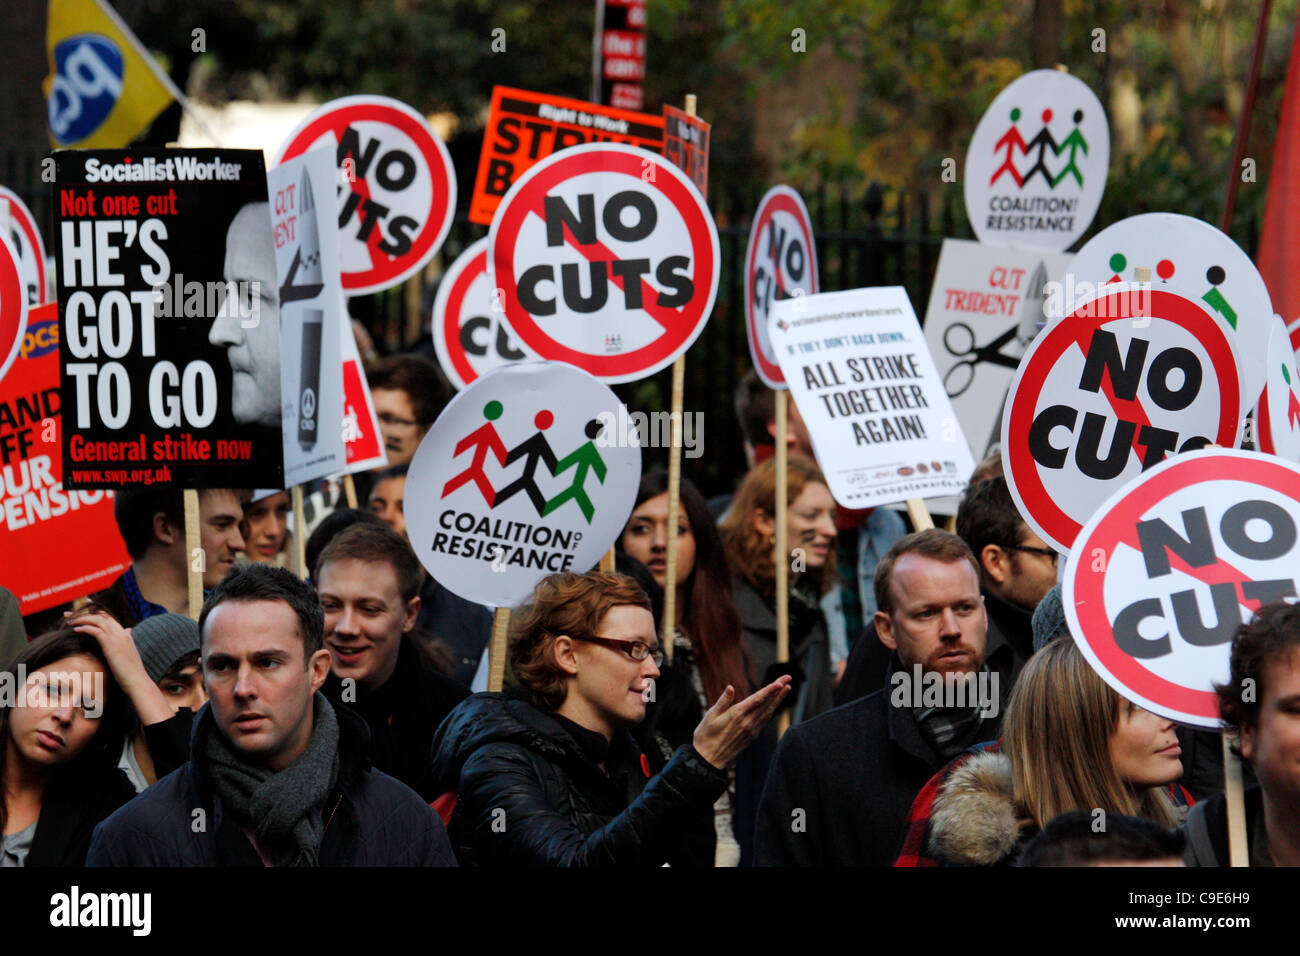 Lincolns inn field Holborn, London, UK, 30/11/2011, protestors in London, London was hit today  by public sector - Stock Image